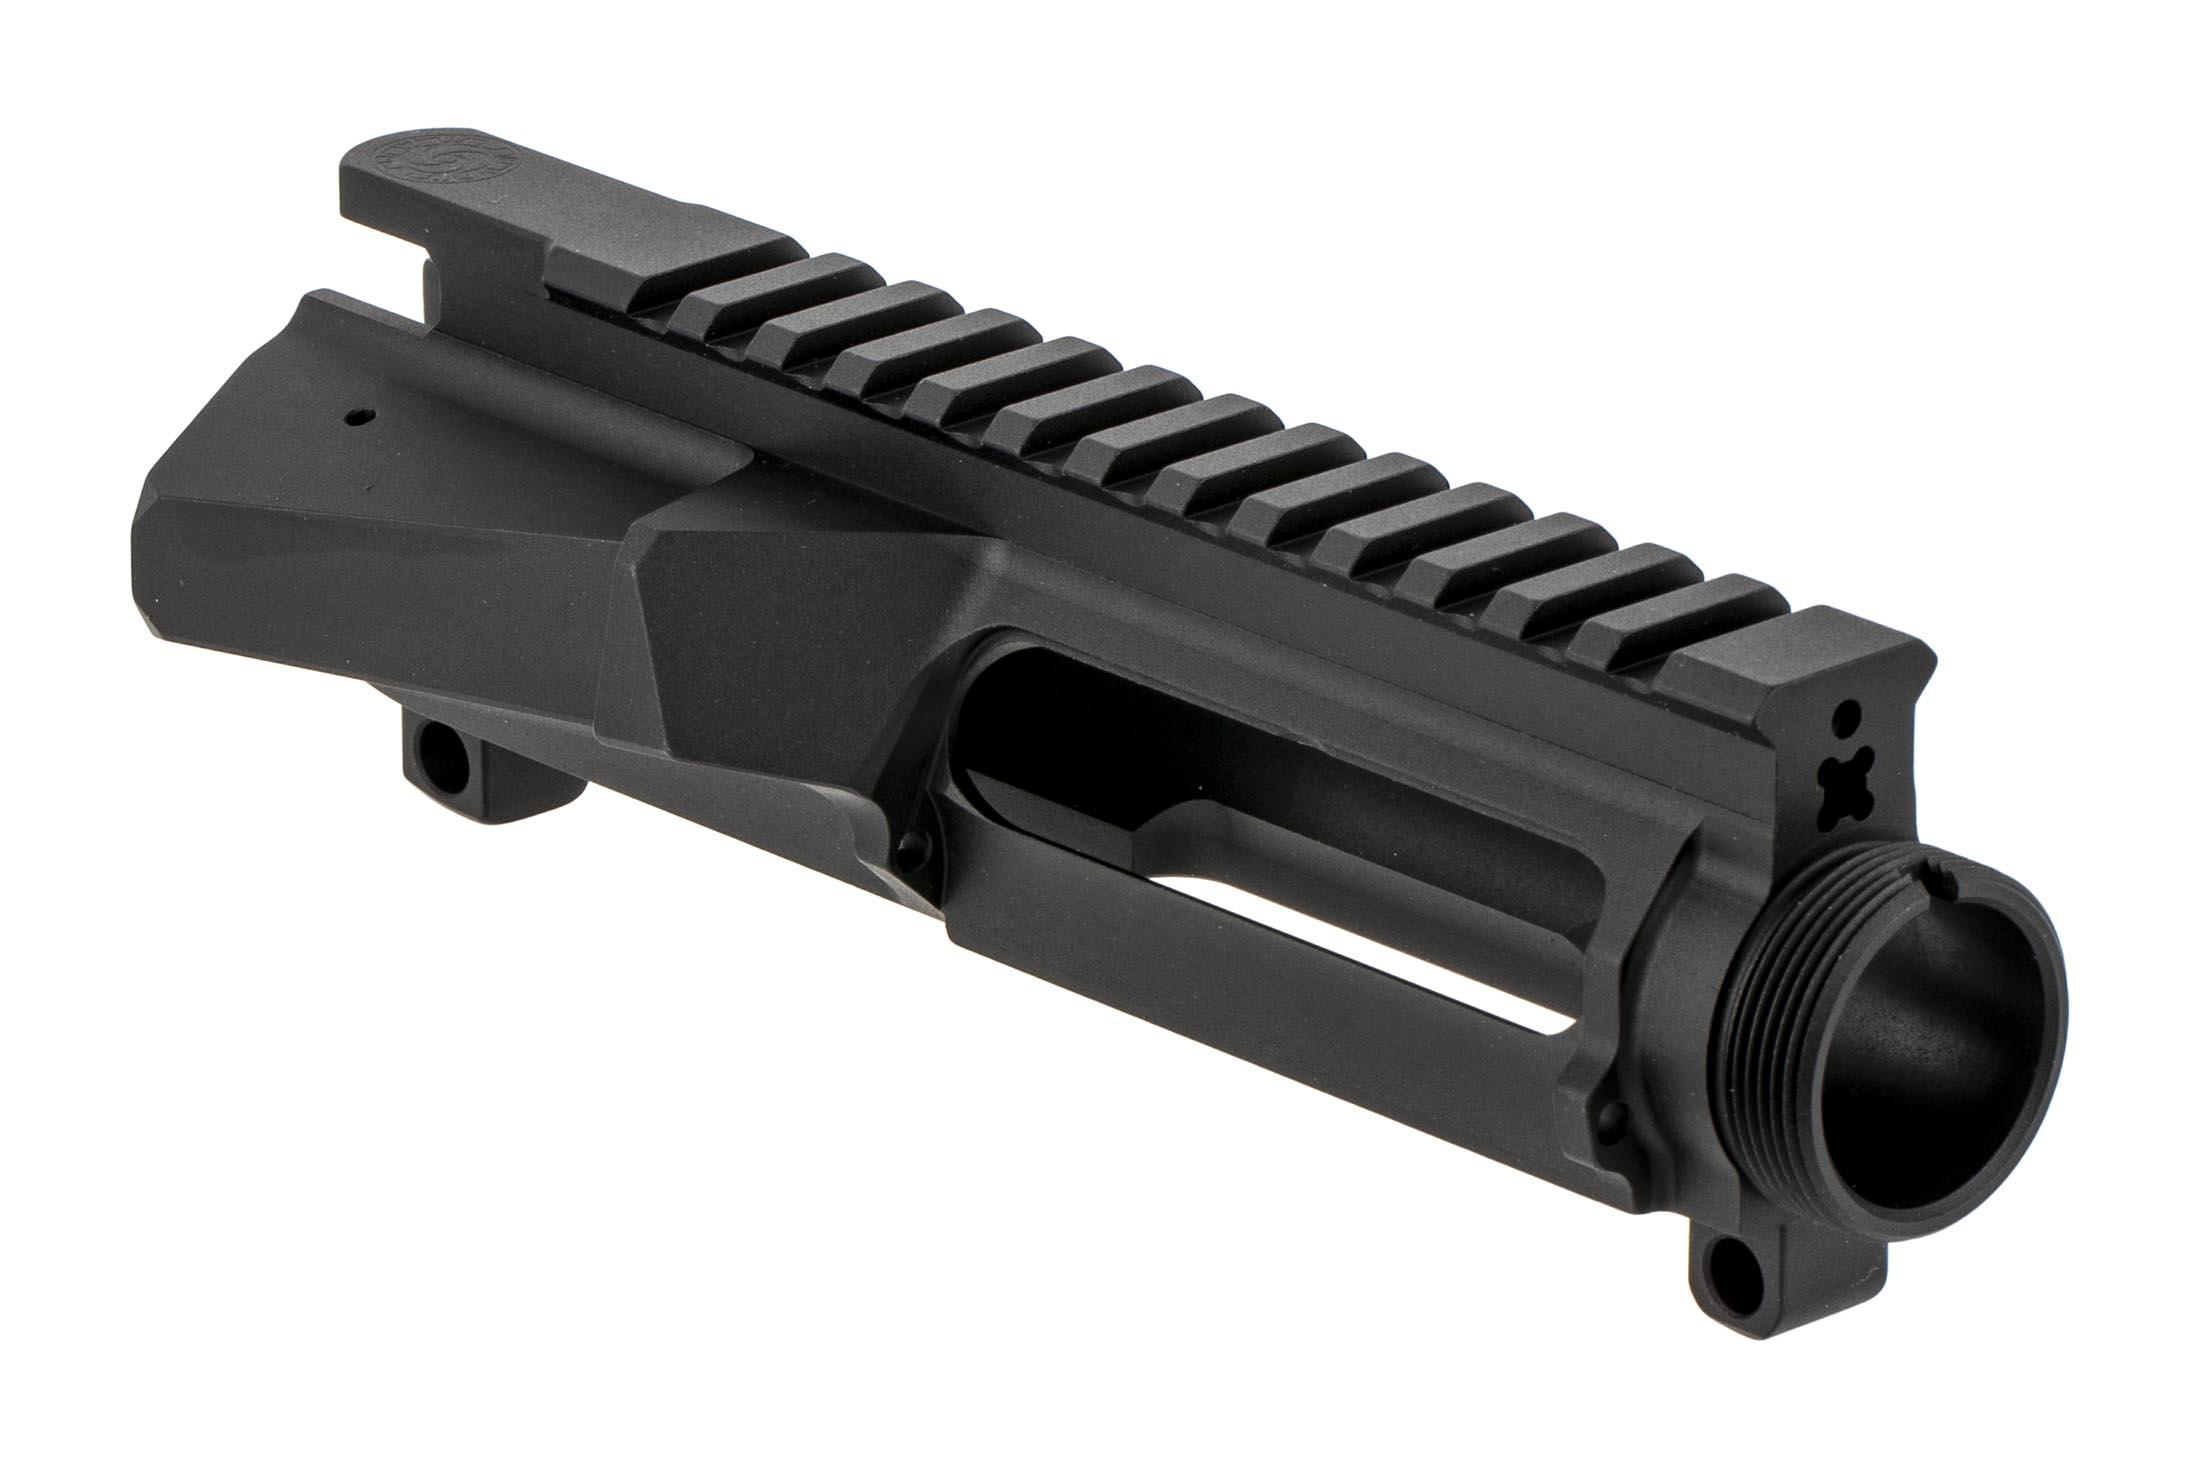 The Cross Machine Tool UPUR-1A Stripped AR15 upper receiver features an enlarged ejection port for .458 SOCOM